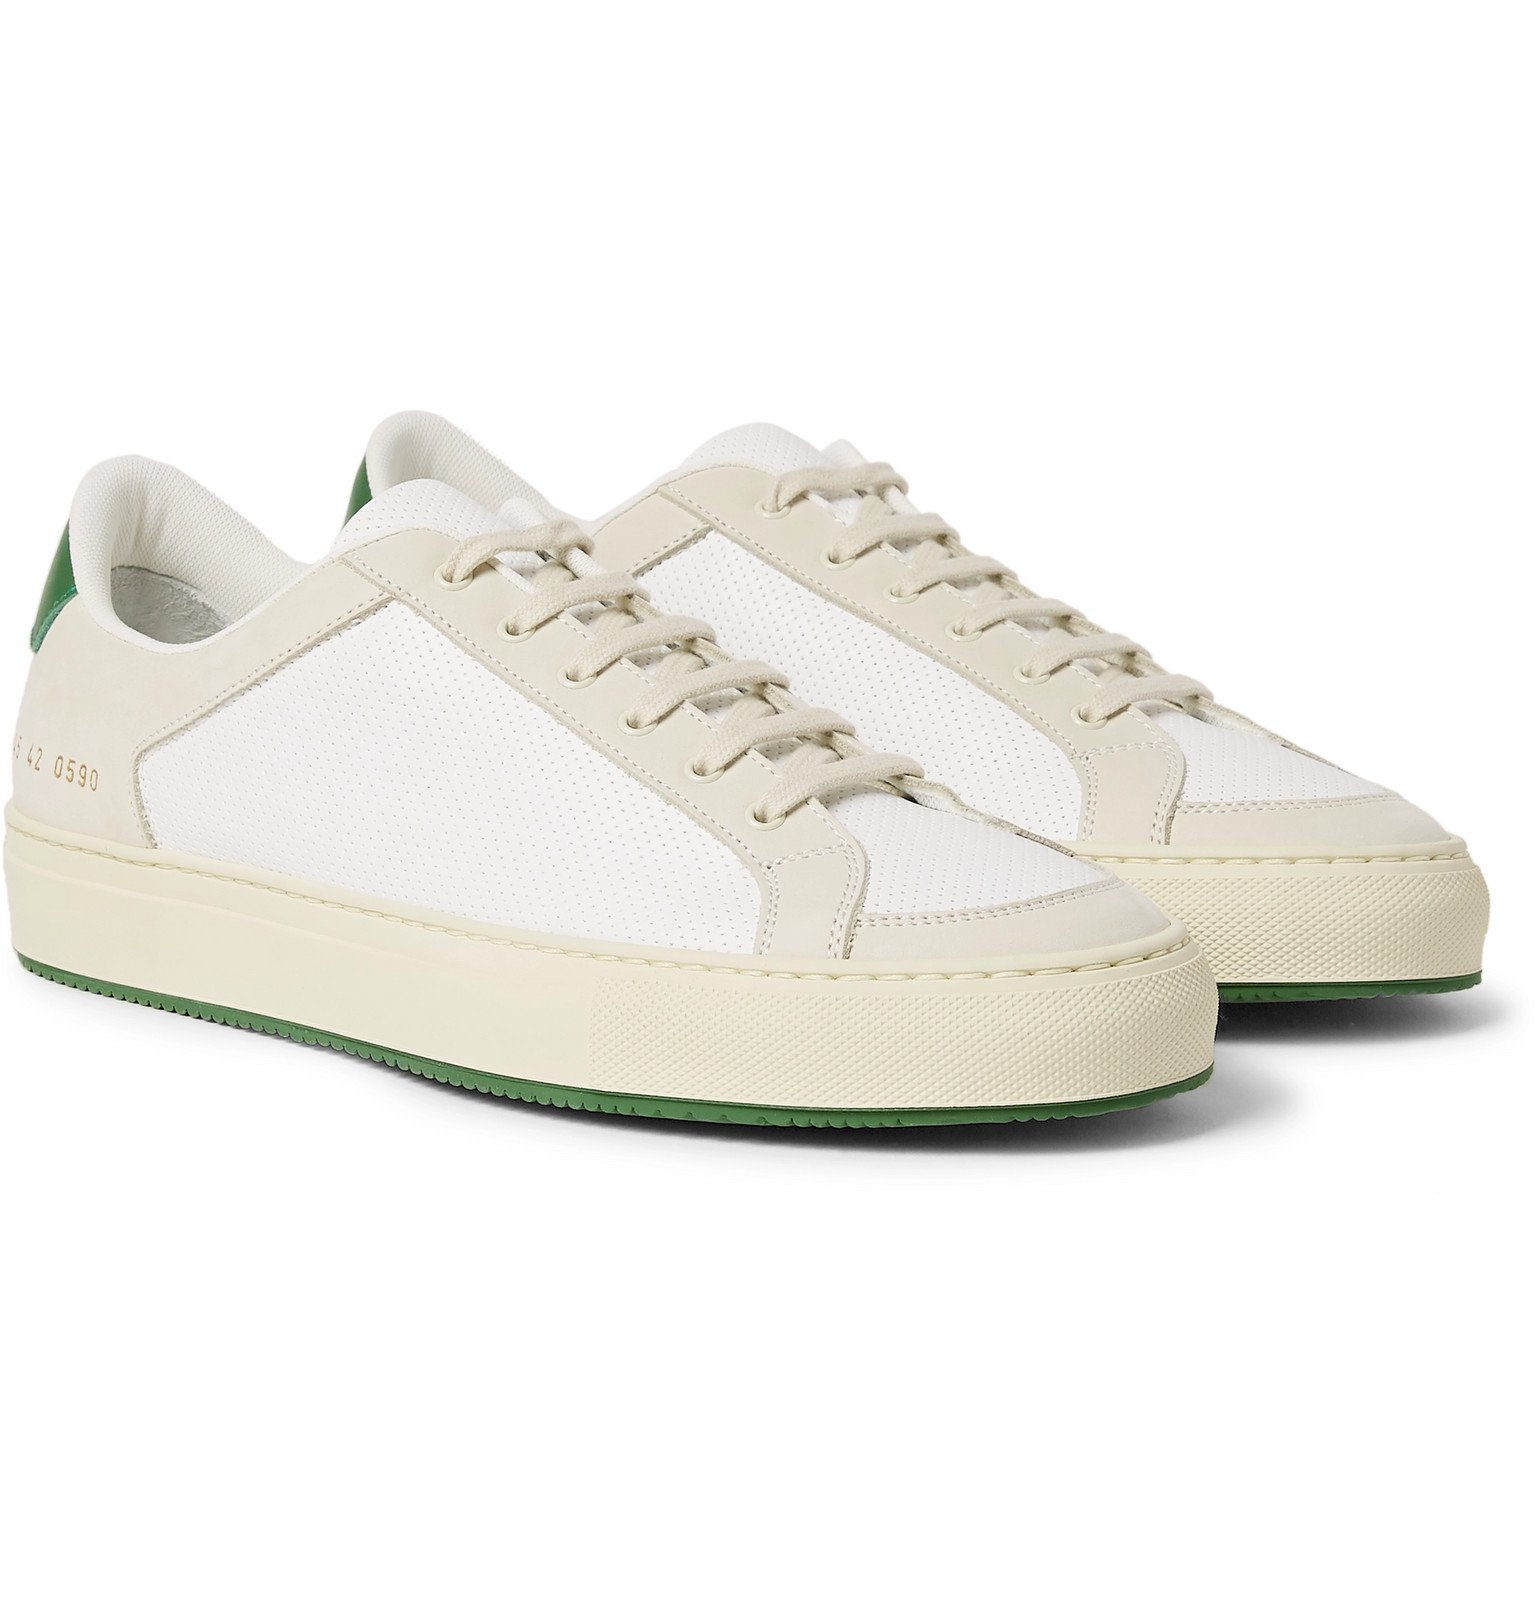 Common Projects - Retro '70s Perforated Leather and Nubuck Sneakers - White